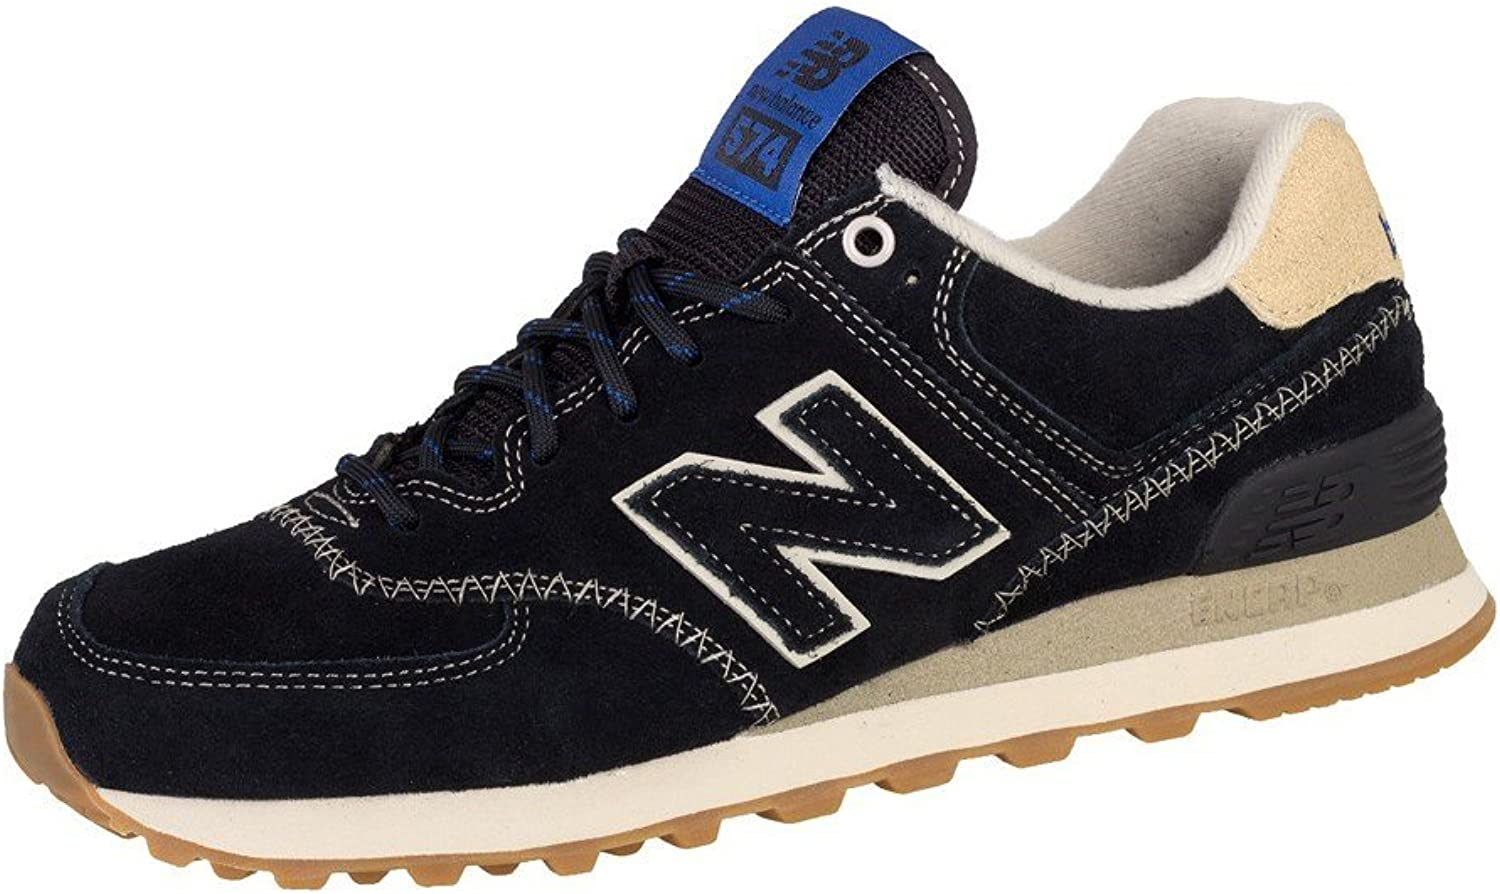 New Balance 574 shoes Trainers Black Tan